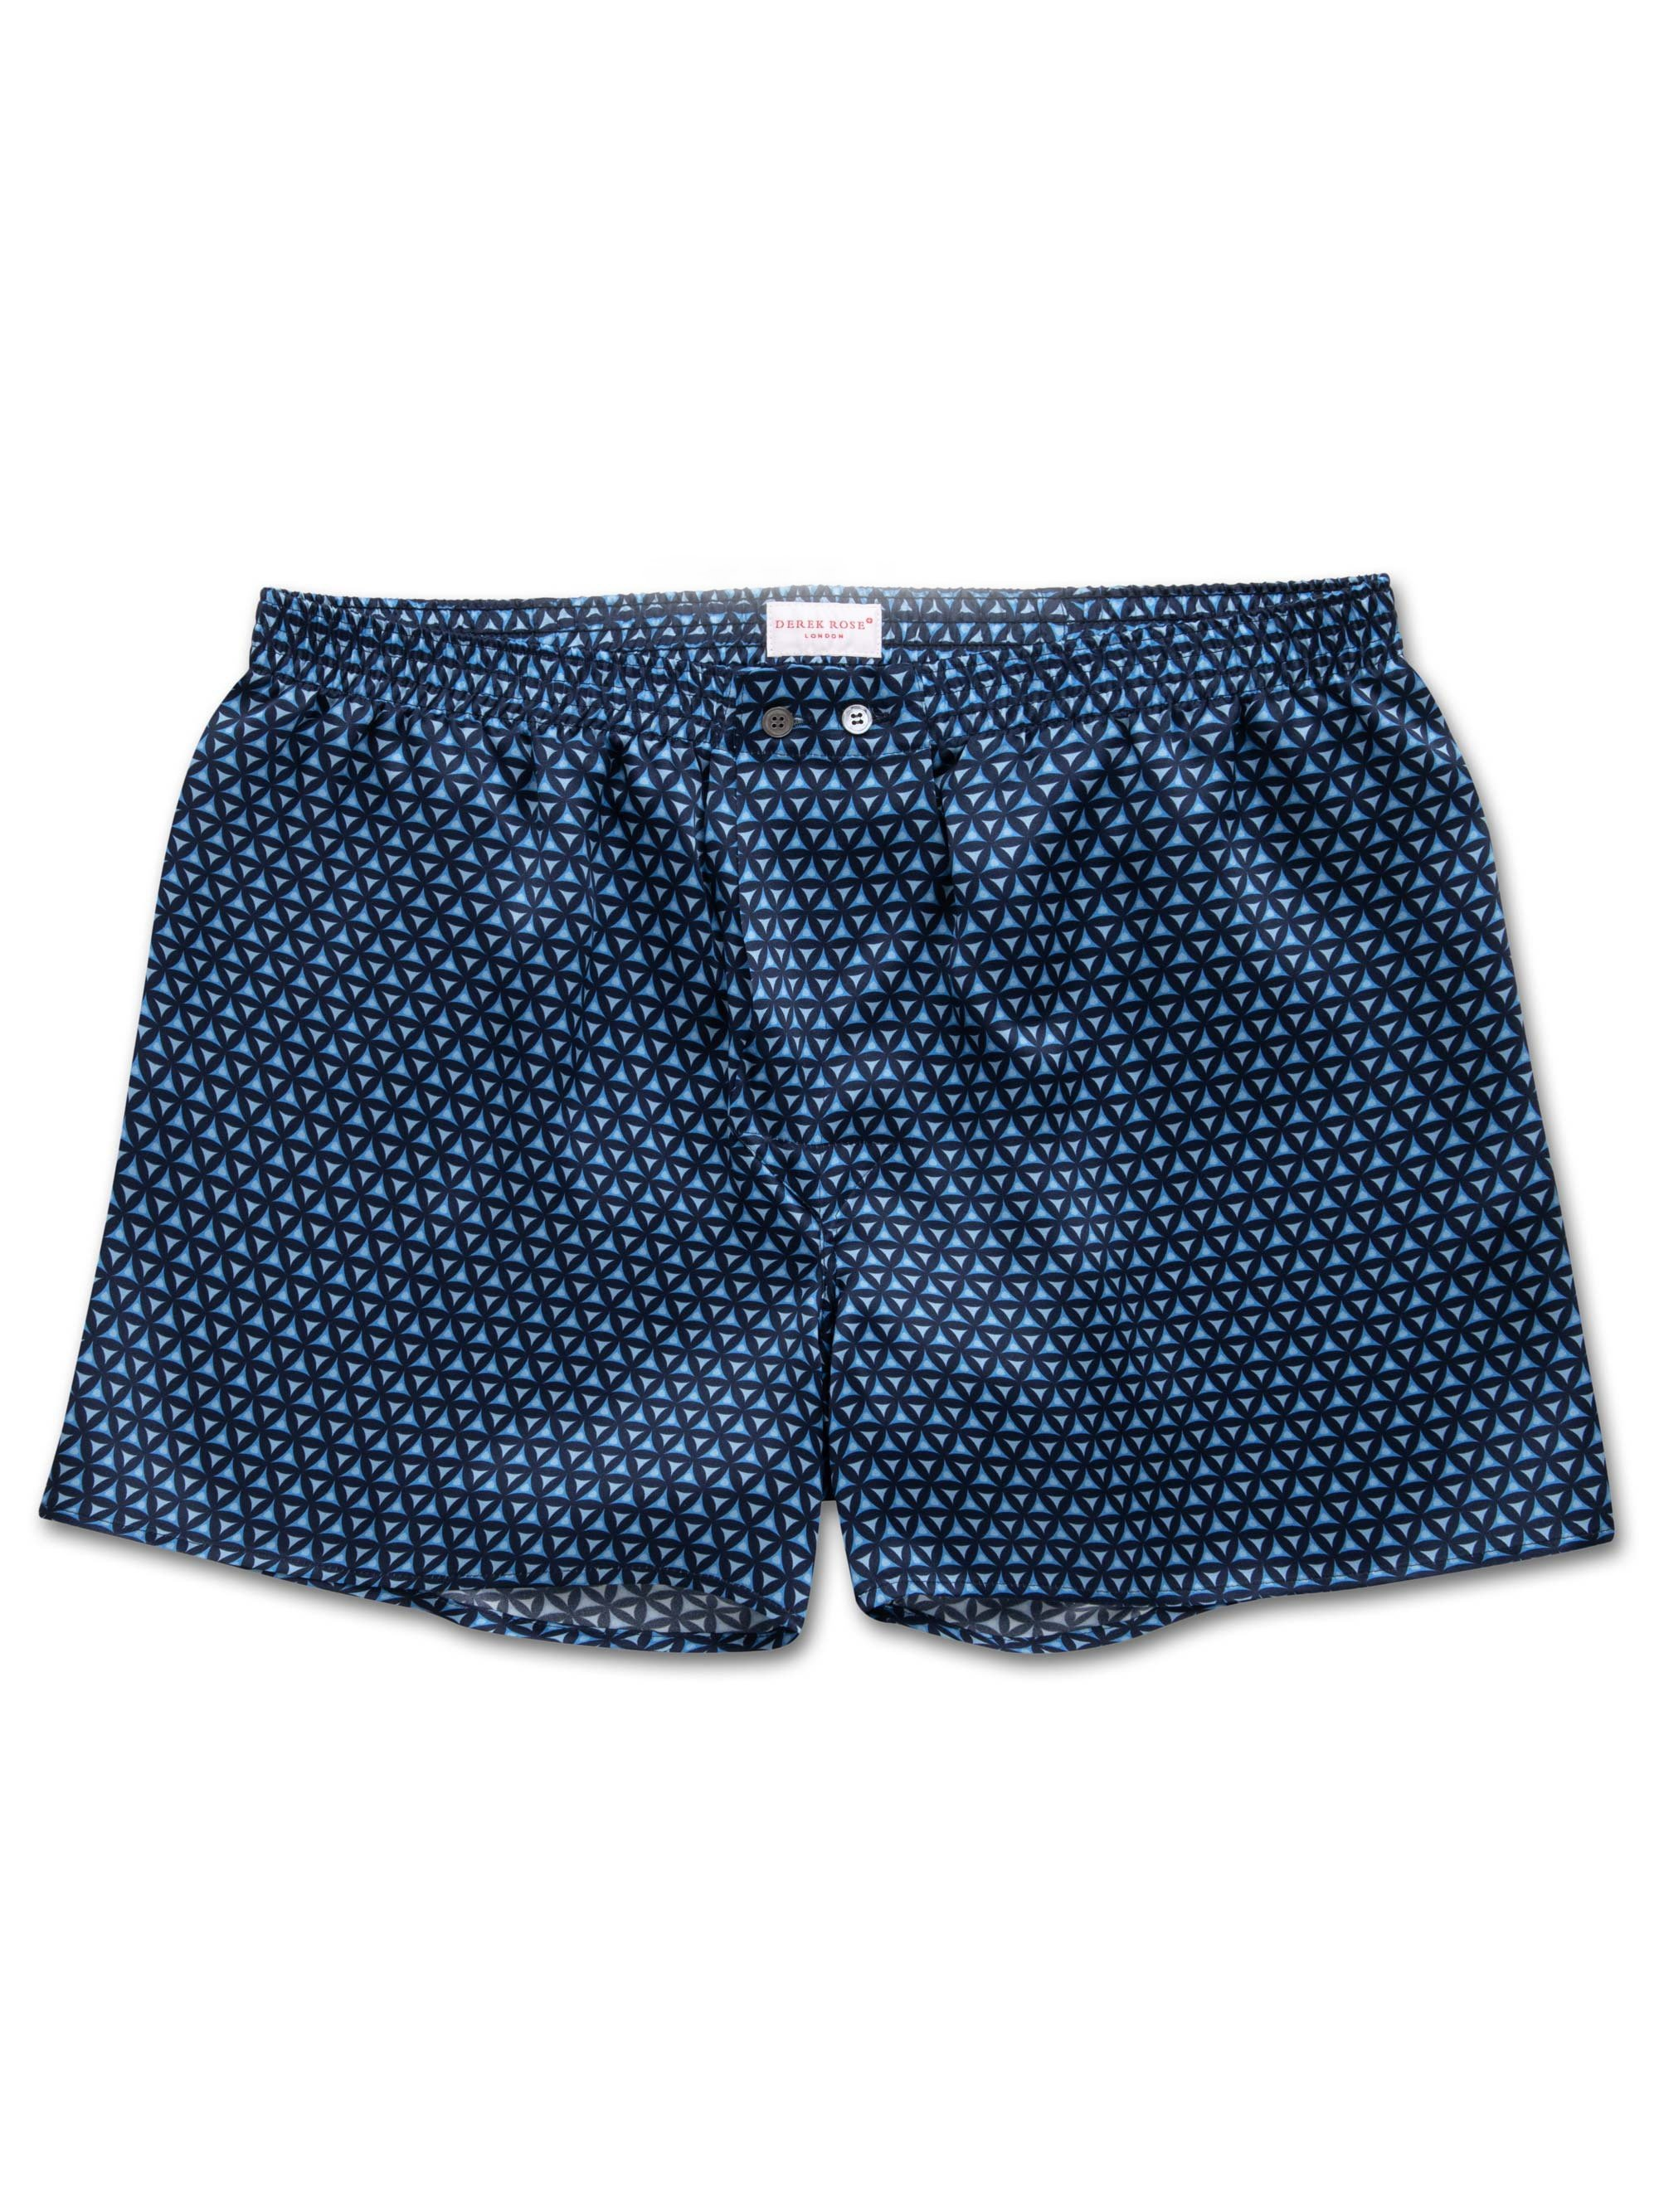 Men's Classic Fit Boxer Shorts Brindisi 46 Pure Silk Satin Blue